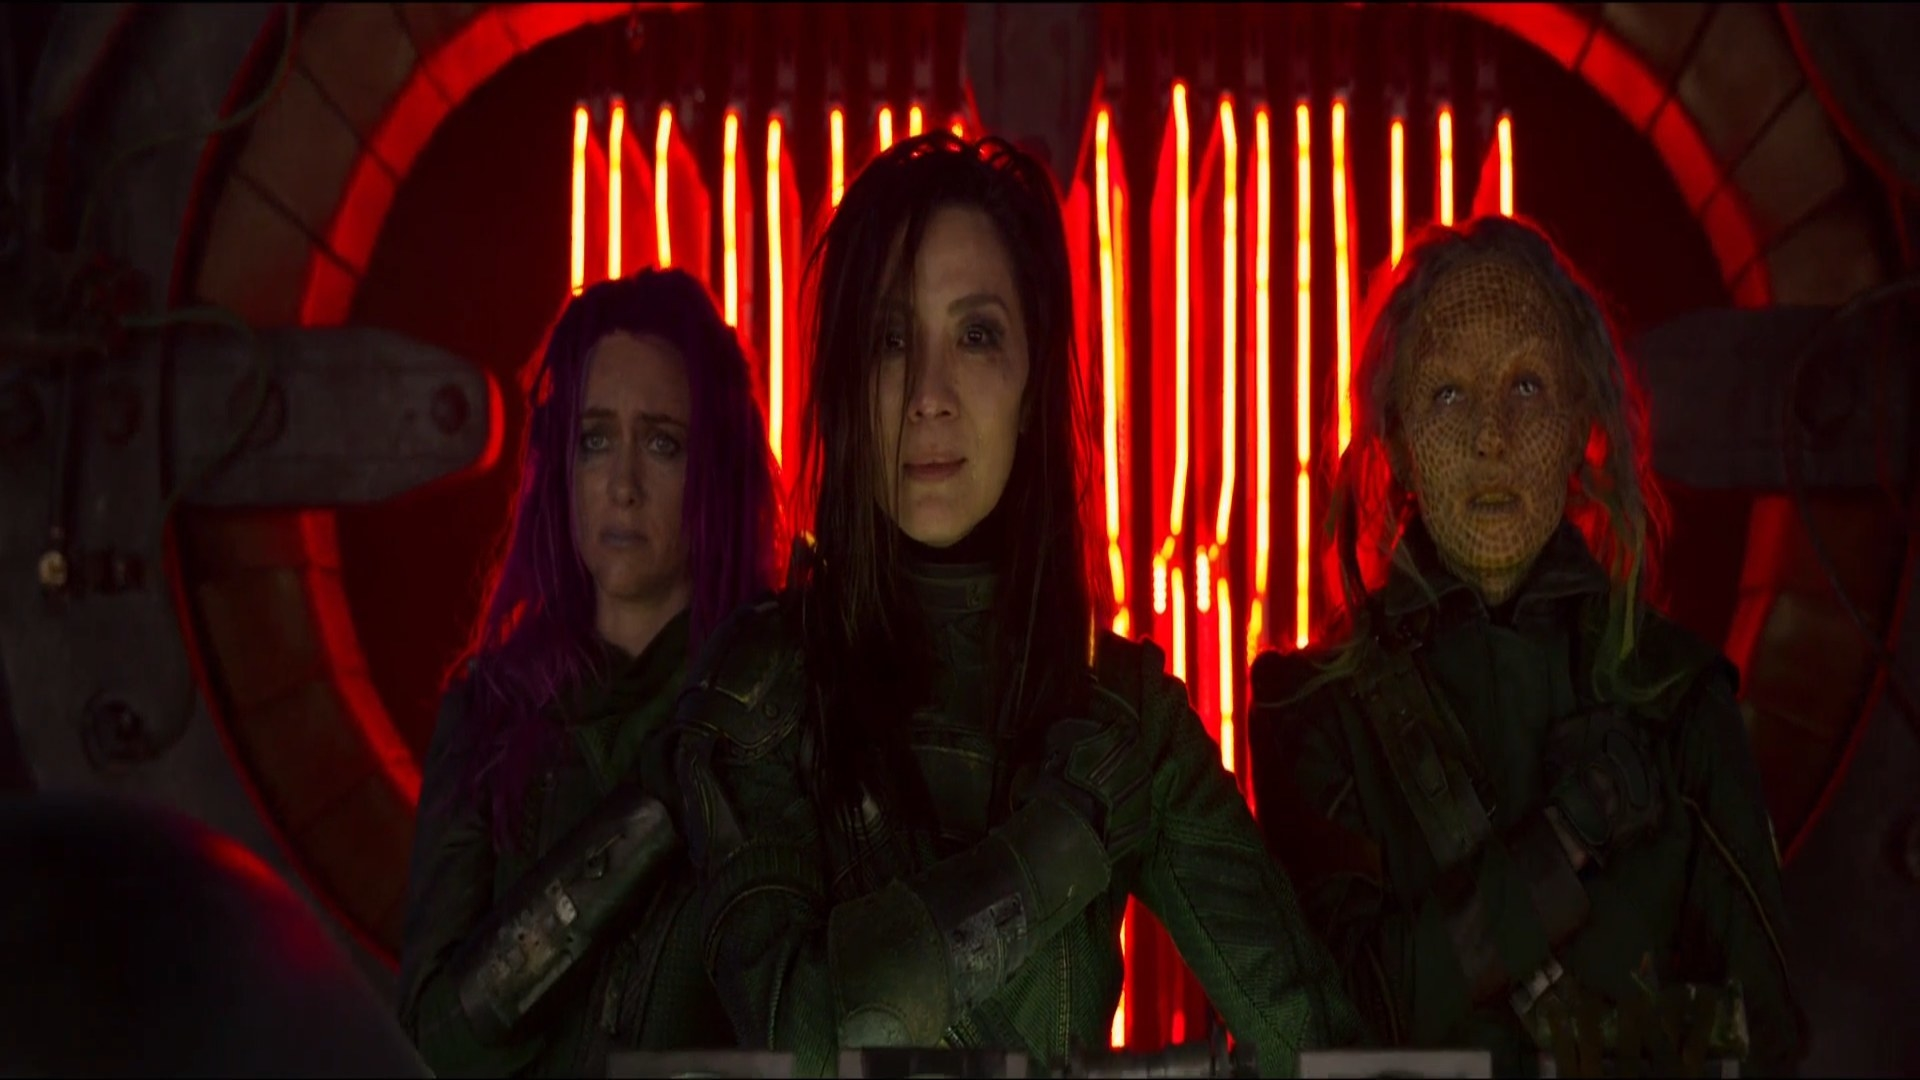 Three women, one of them alien, making a gesture of touching their hearts with their right hands.